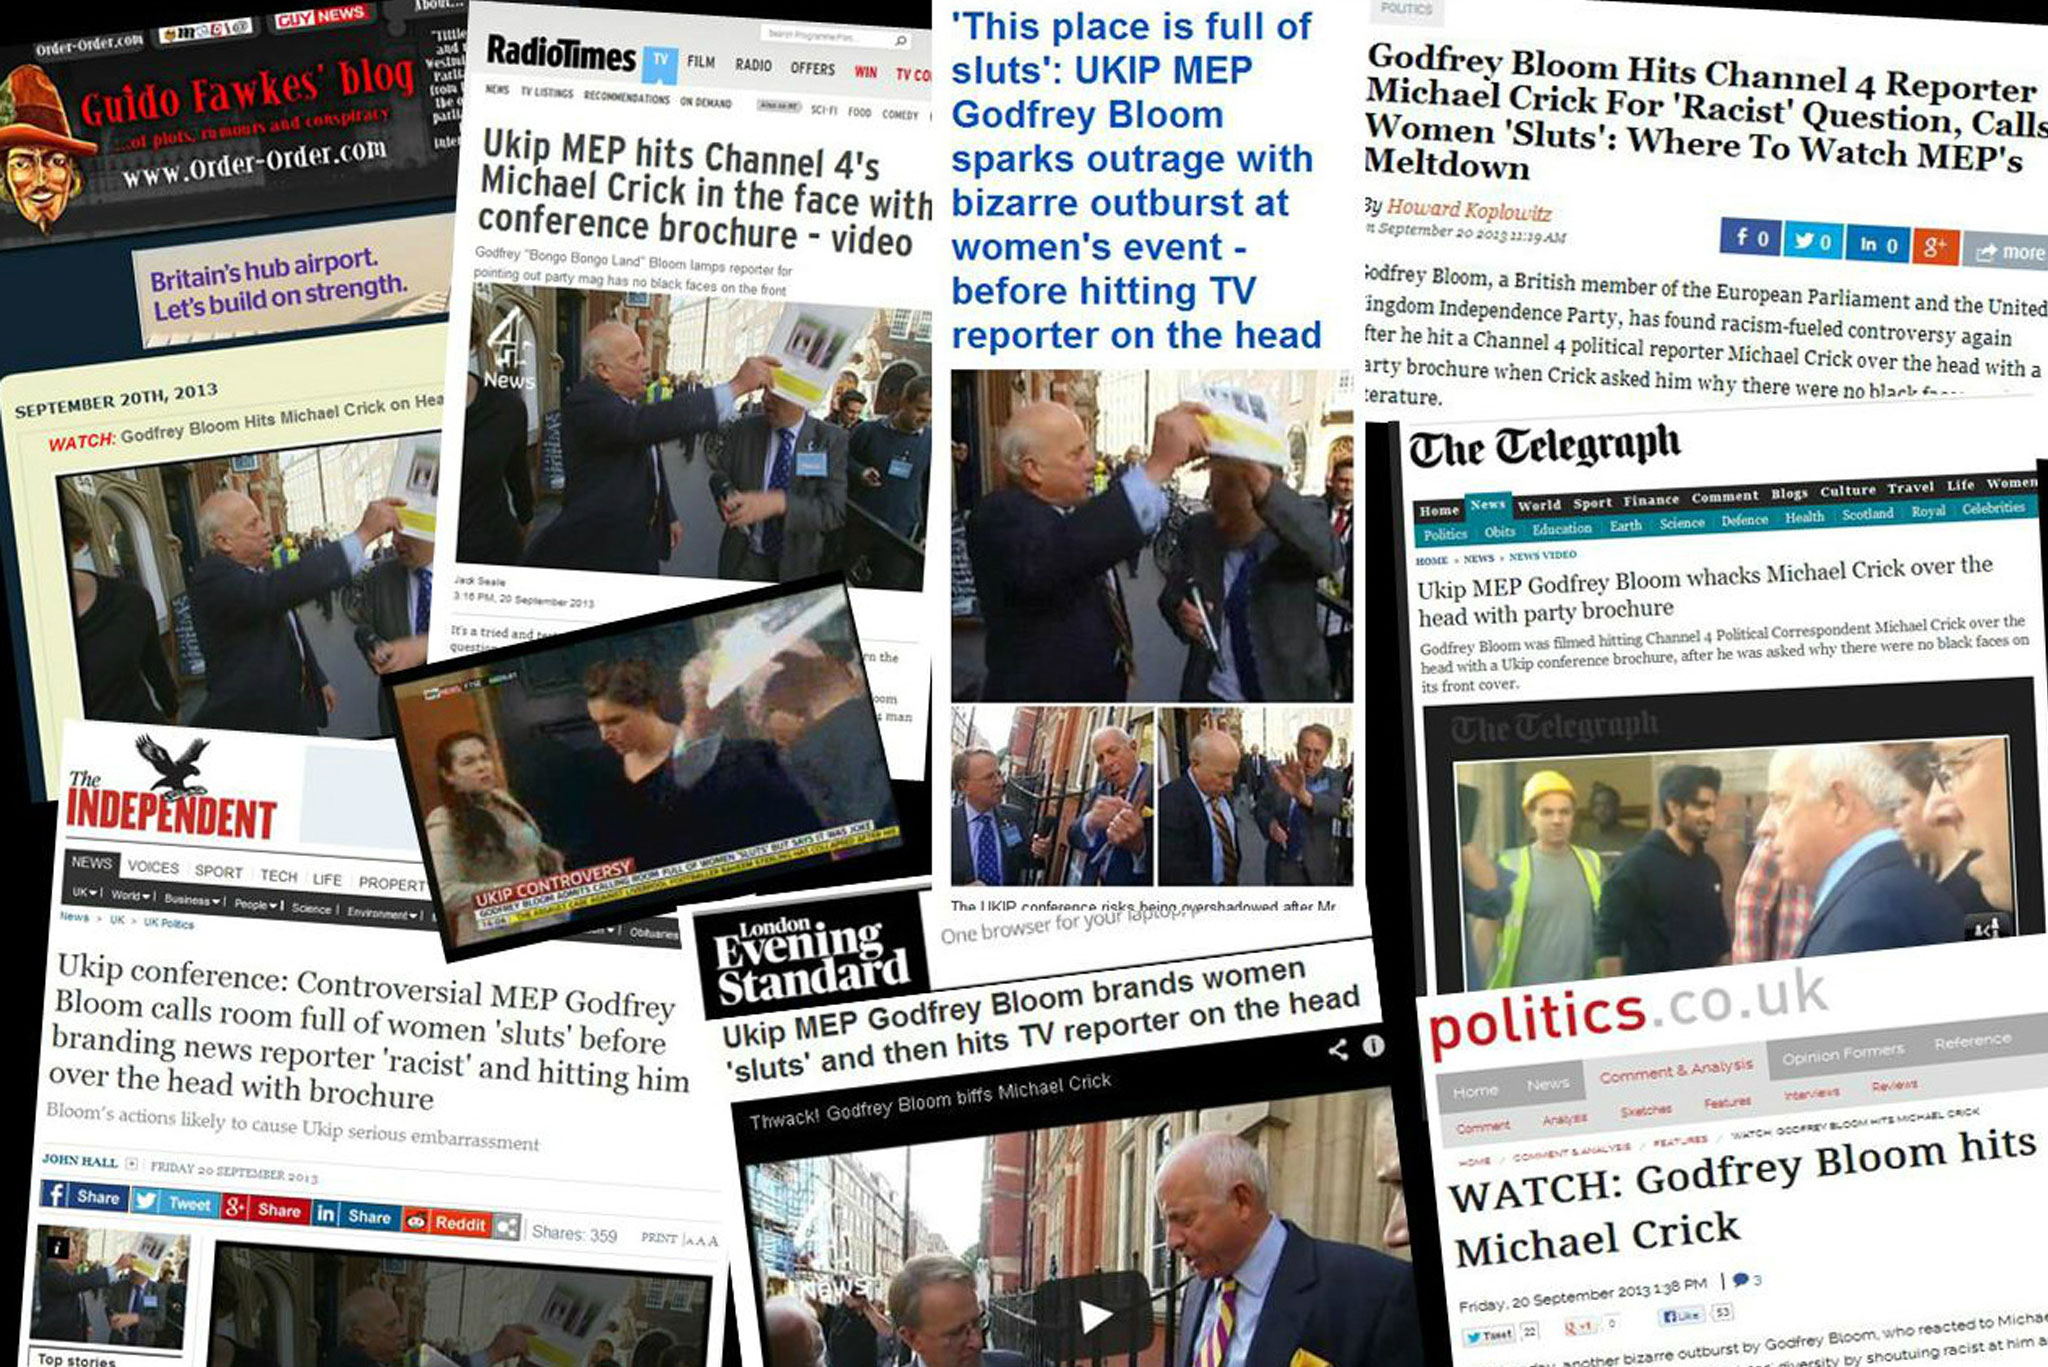 Media coverage of Michael Crick's work.